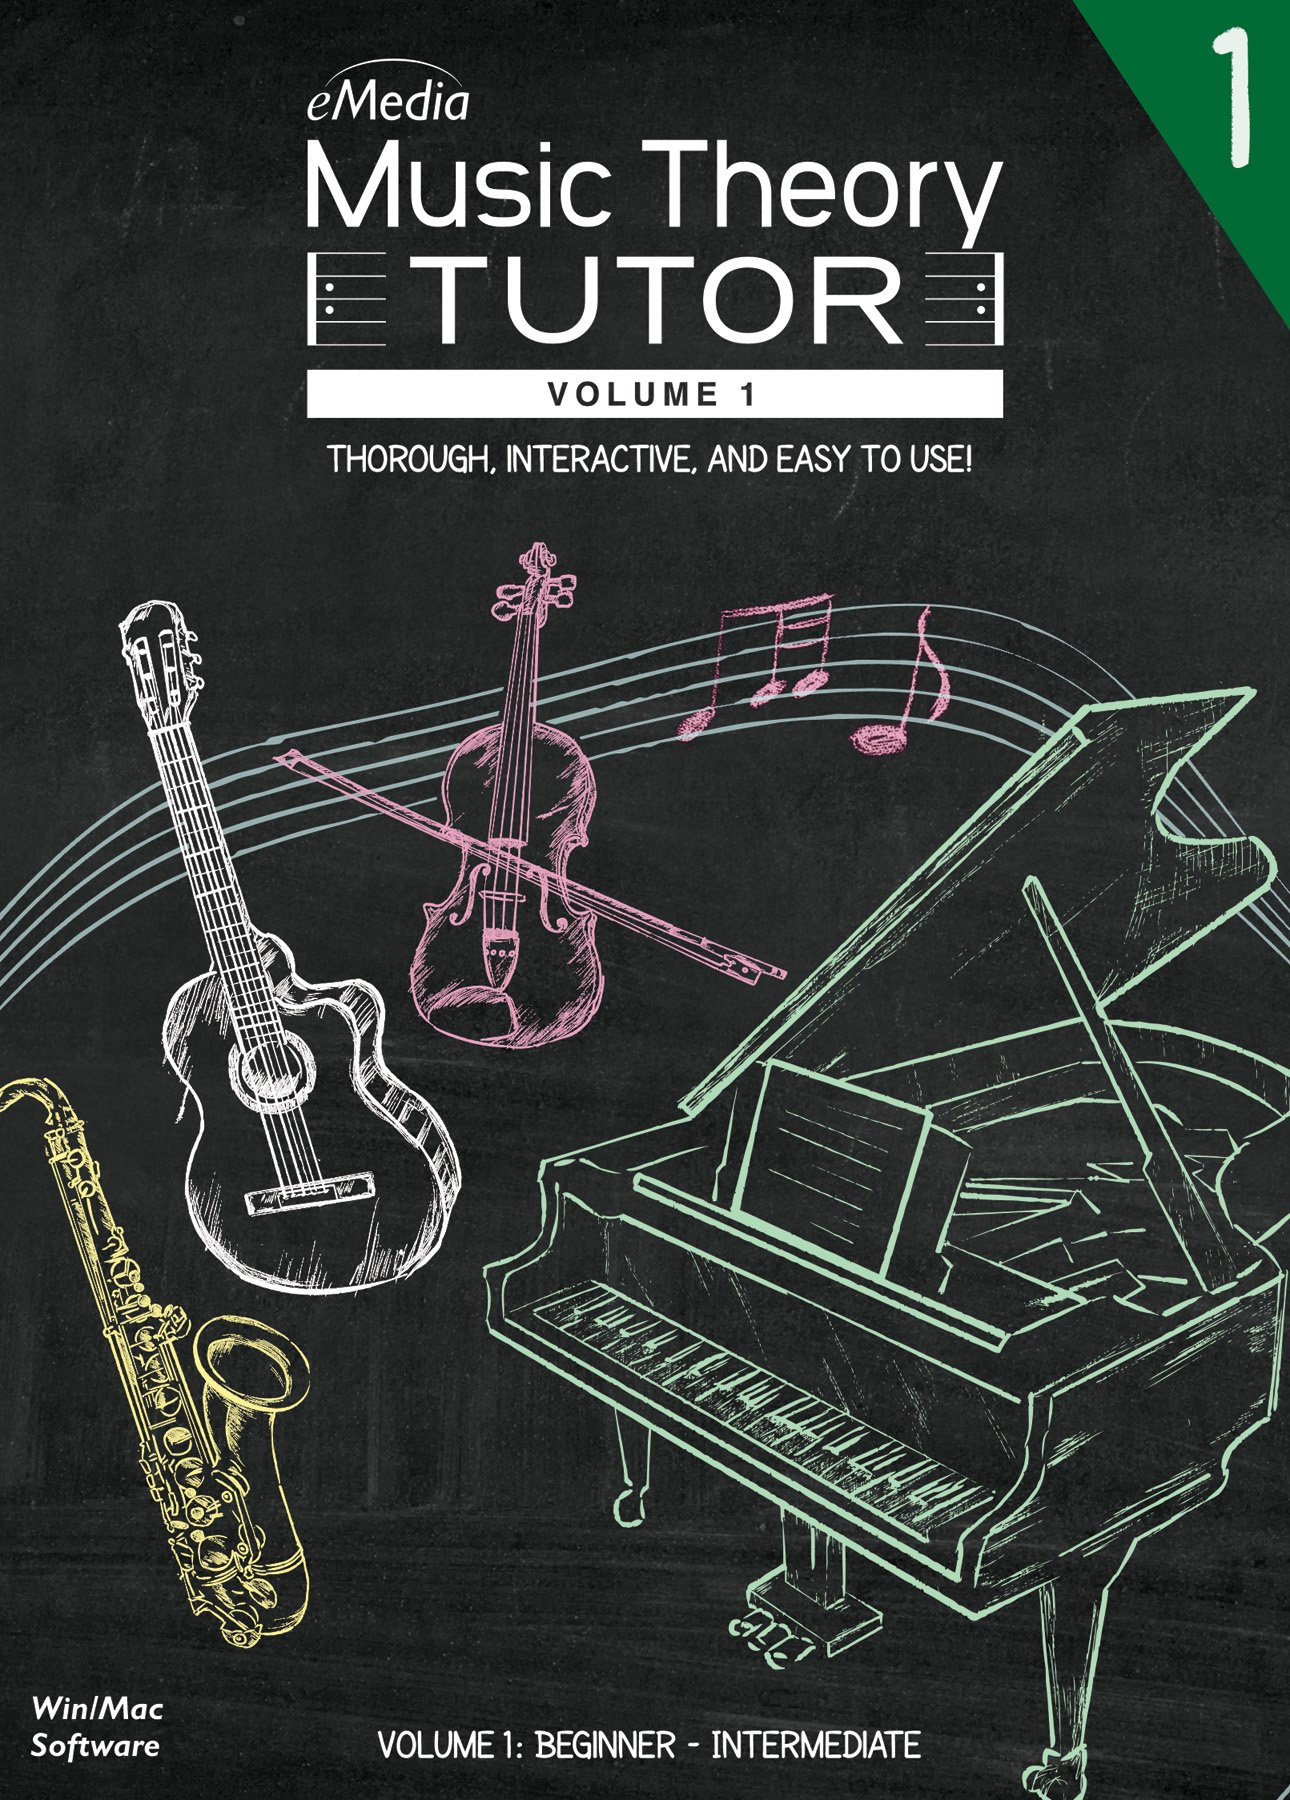 eMedia Music Theory Tutor Vol. 1 [PC Download] by eMedia Music